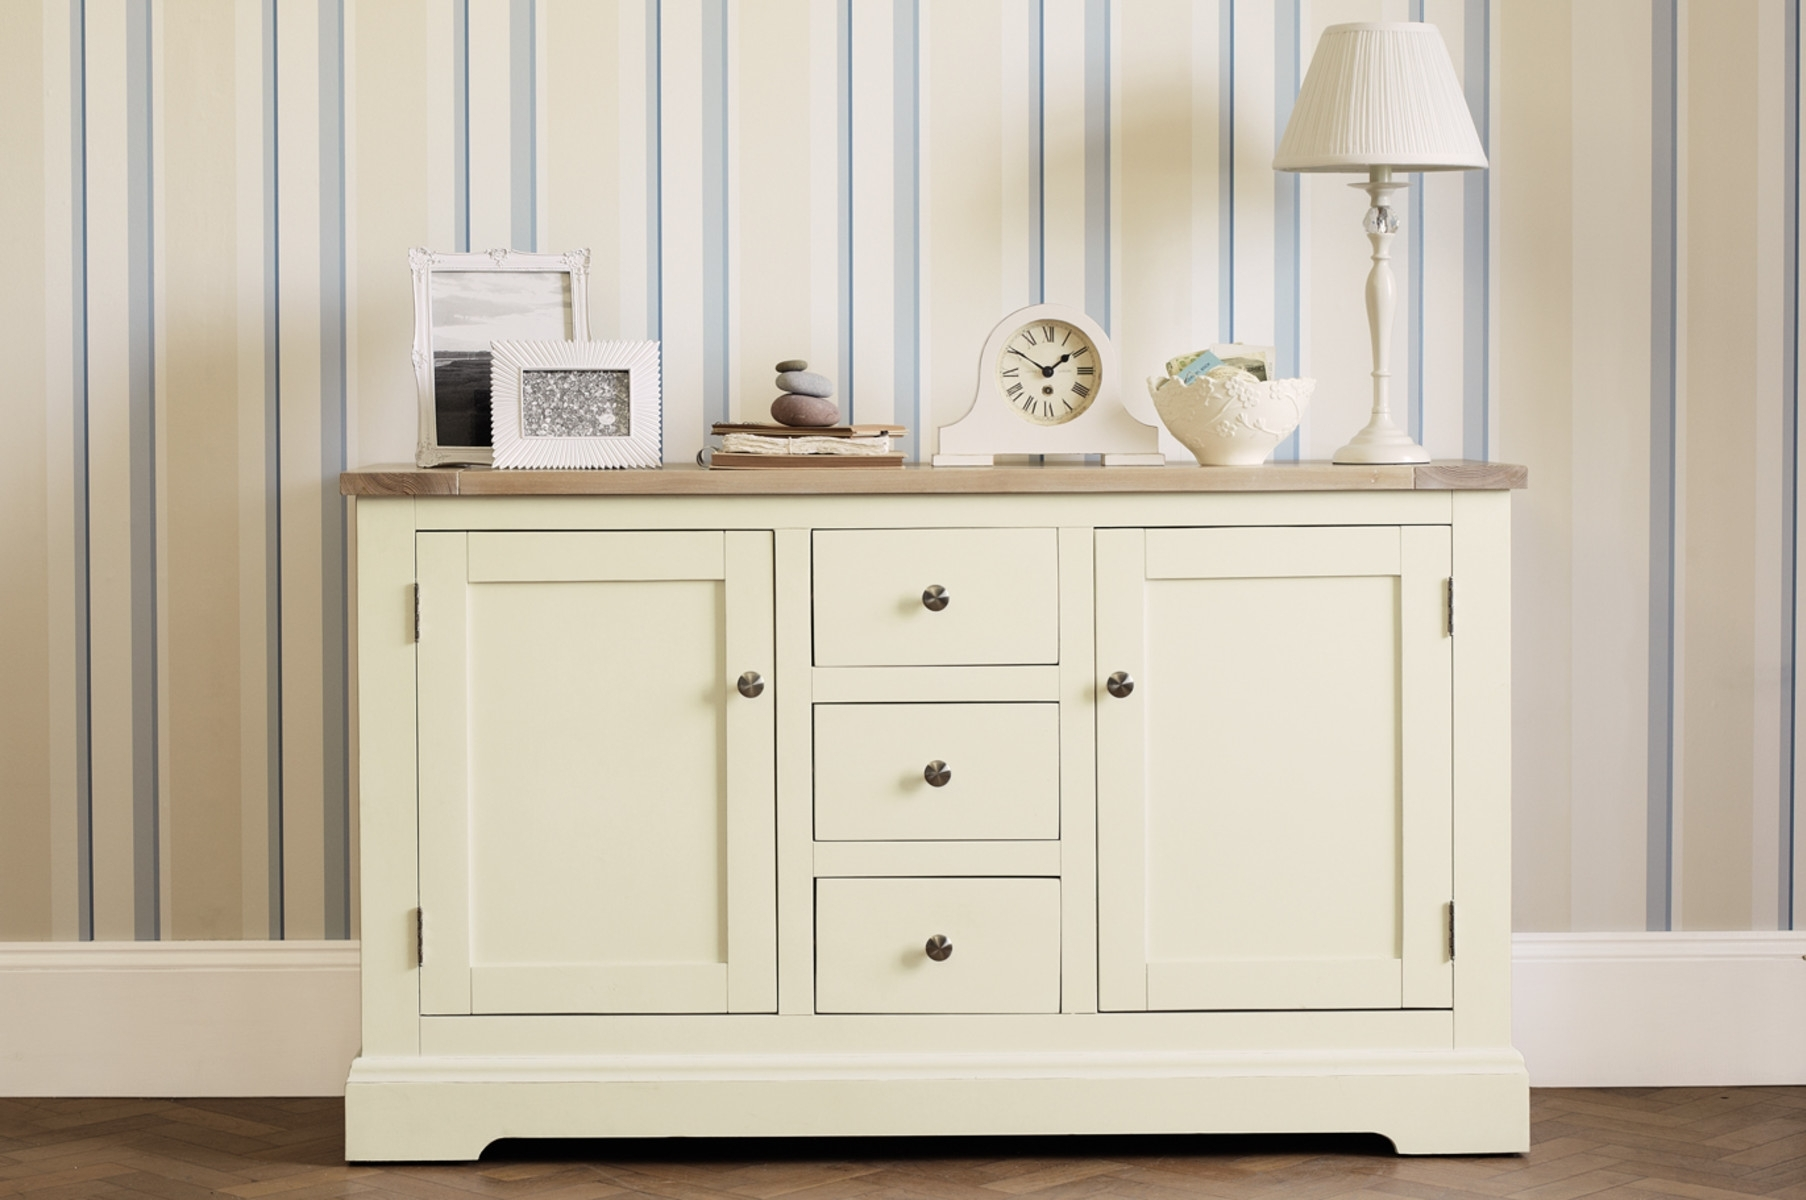 Made To Order Furniture - Dorset White 2 Door 3 Drawer Sideboard inside White Wash 3-Door 3-Drawer Sideboards (Image 16 of 30)